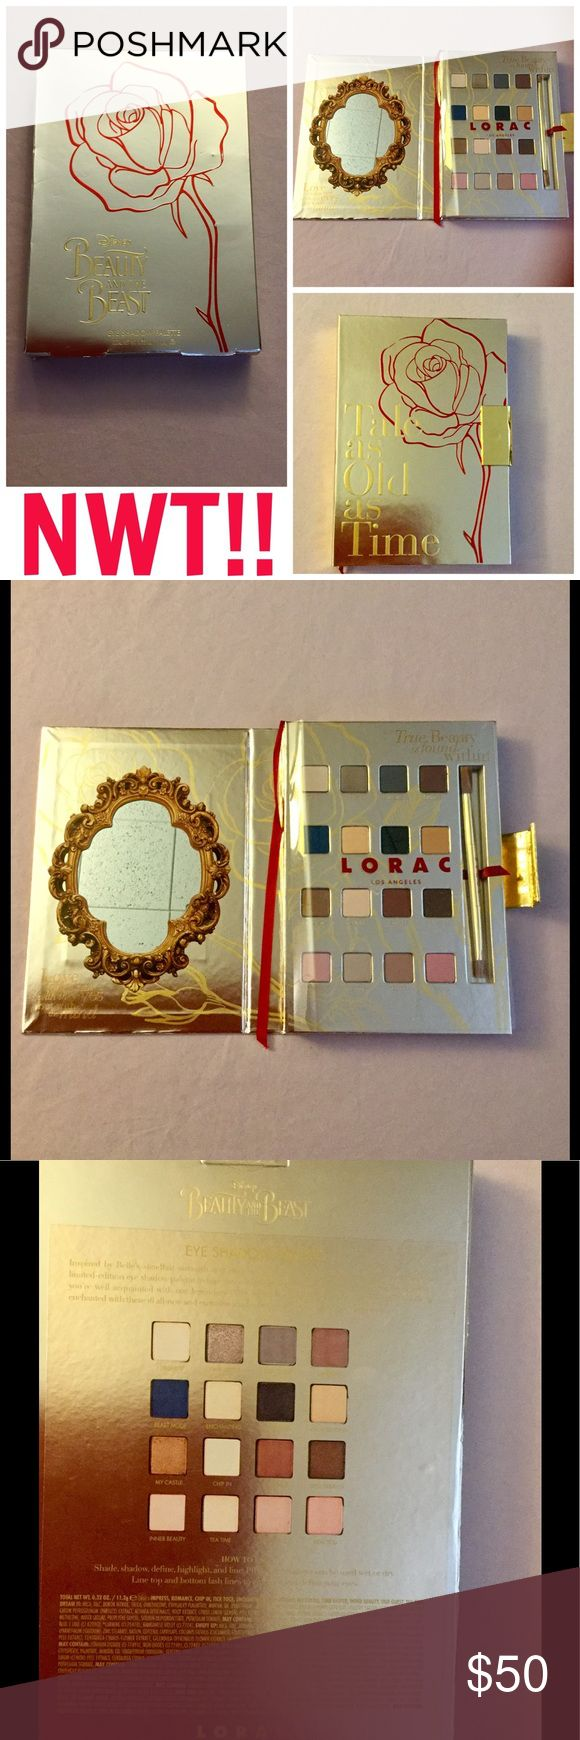 NWT! LORAC BEAUTY & THE BEAST EYE SHADOW PALLET This is a NWT in the box only opened to take the pics LORAC Limited Edition Beauty & the Beast eyeshadow pallet w/a double ended brush-see pic #5. 16 all new & exclusive shades from their best in class Pro formulas. LORAC is a 💯% cruelty free company, which is important to me! Rich pigments & superior manufacturing ensures the color integrity of your makeup stays true & on for 3-4X's as long as others. LORAC offers Red Carpet makeup for the…